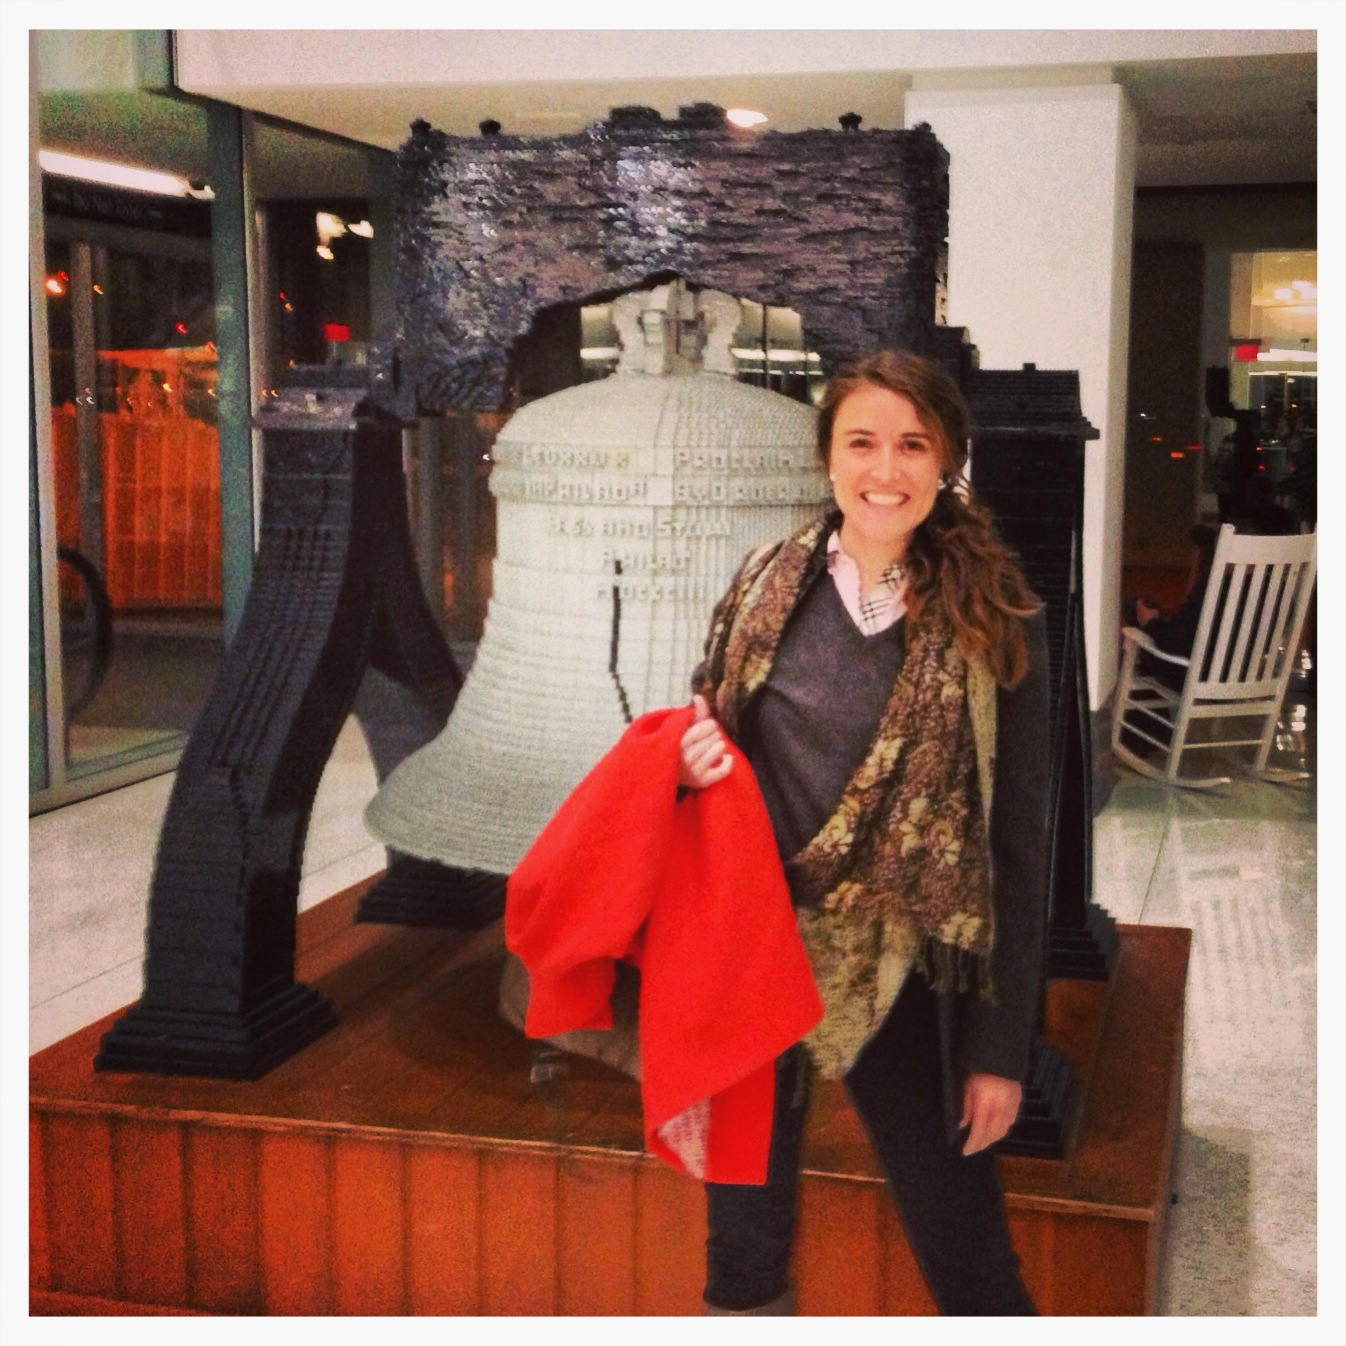 This is me, Megan Bute, in front of thelife-size LEGO model of the Liberty Bell at the Philadelphia airport